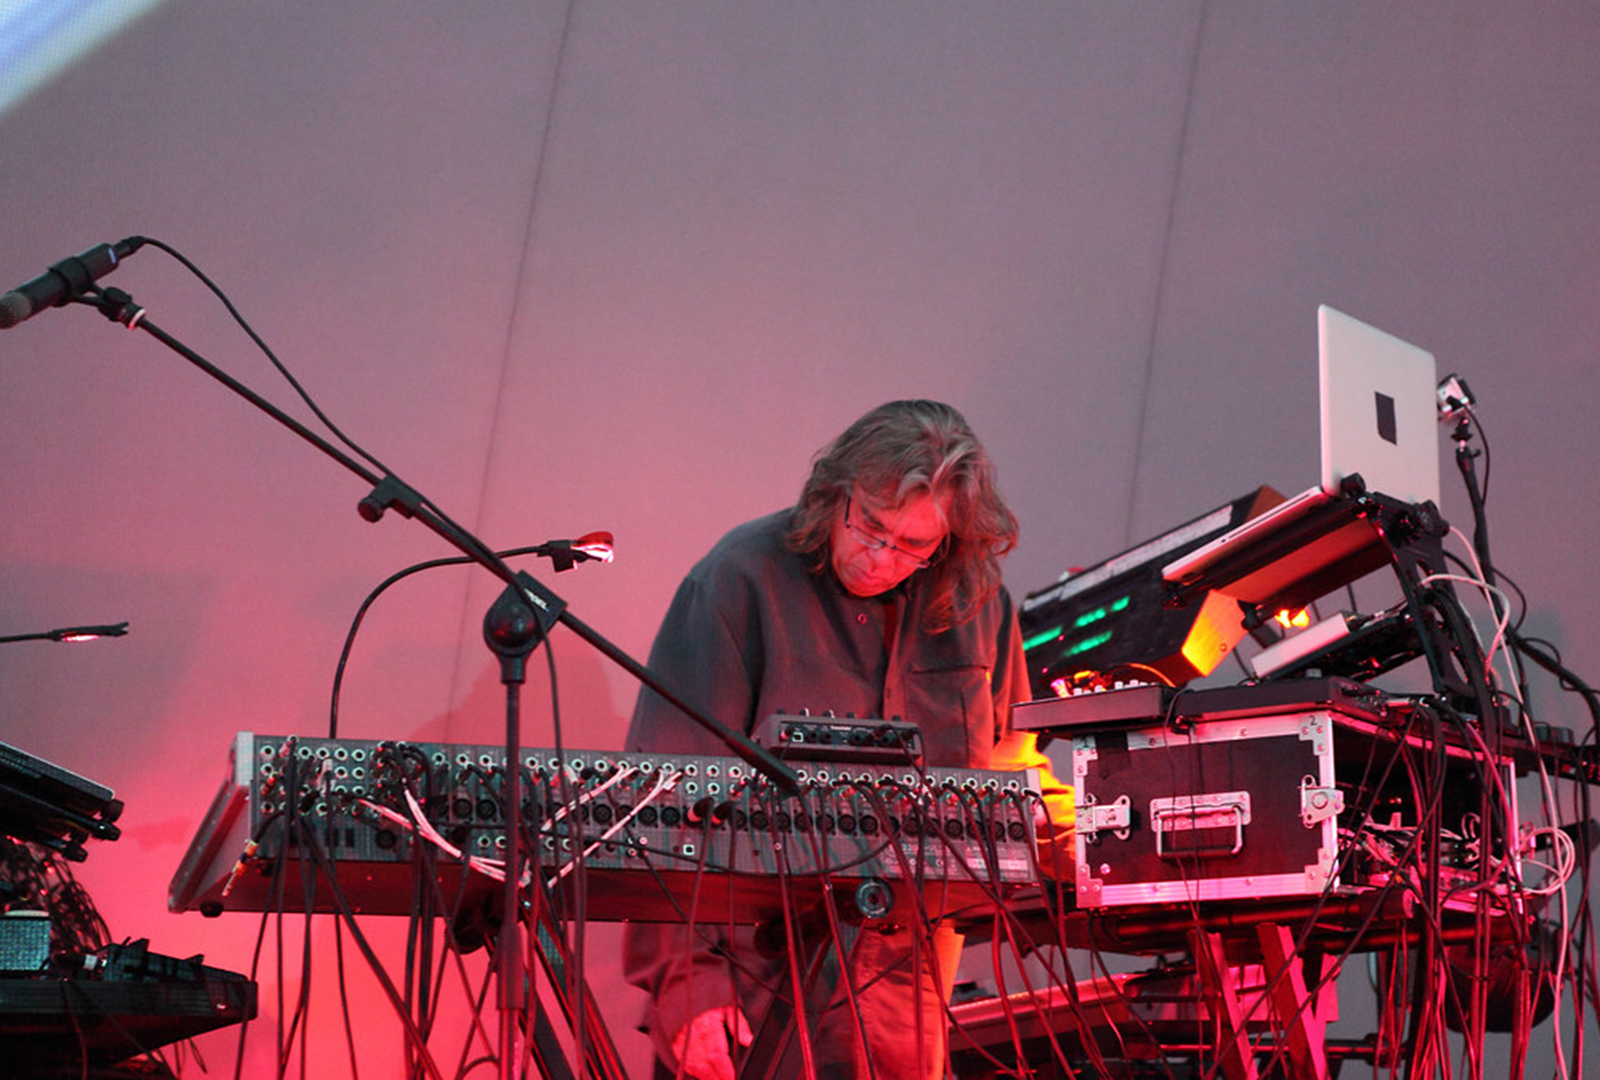 Steve Roach channels optimism and inner strength on new album, Tomorrow